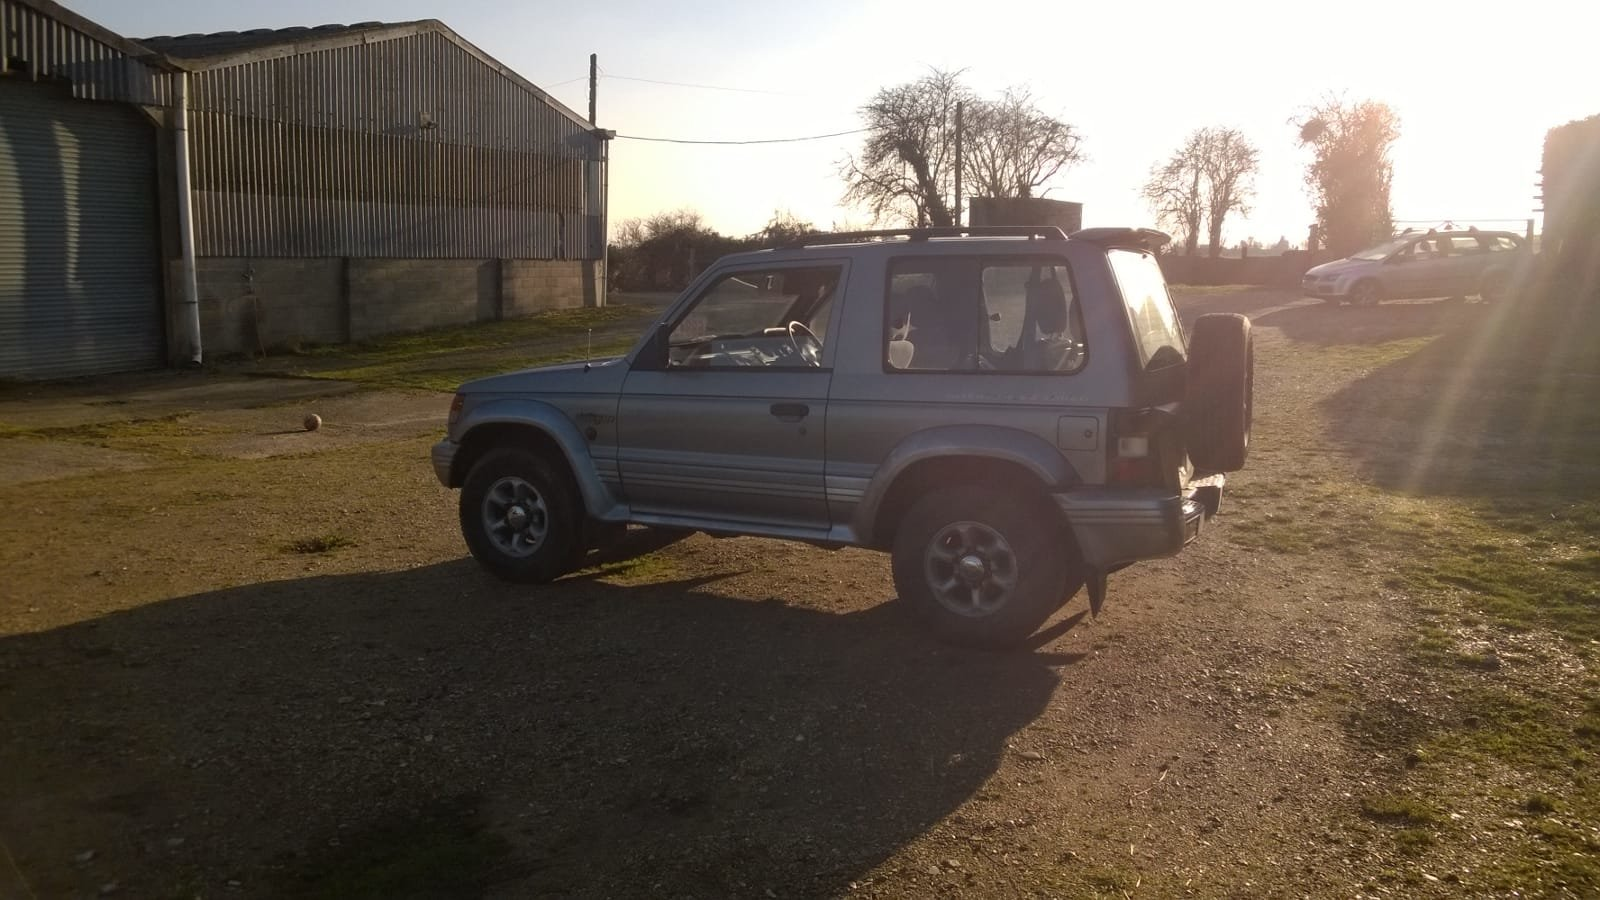 1995 Mitsubishi Shogun Swb For Sale (picture 3 of 5)